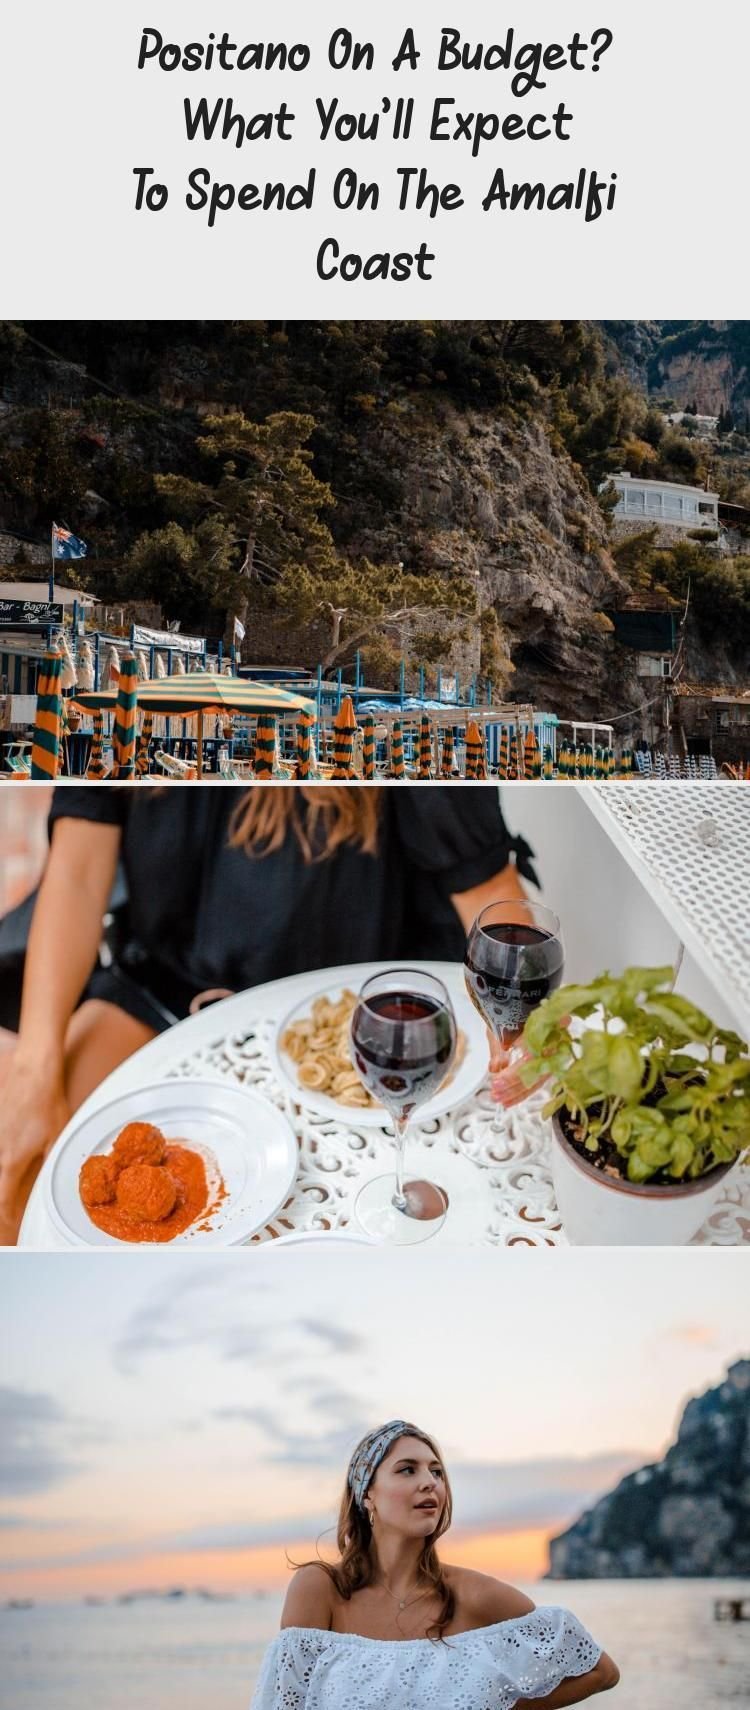 Positano On A Budget What Youll Expect To Spend On The Amalfi Coast  Travel Positano On A Budget What Youll Expect To Spend On The Amalfi Coast  TravelTravel Photography...